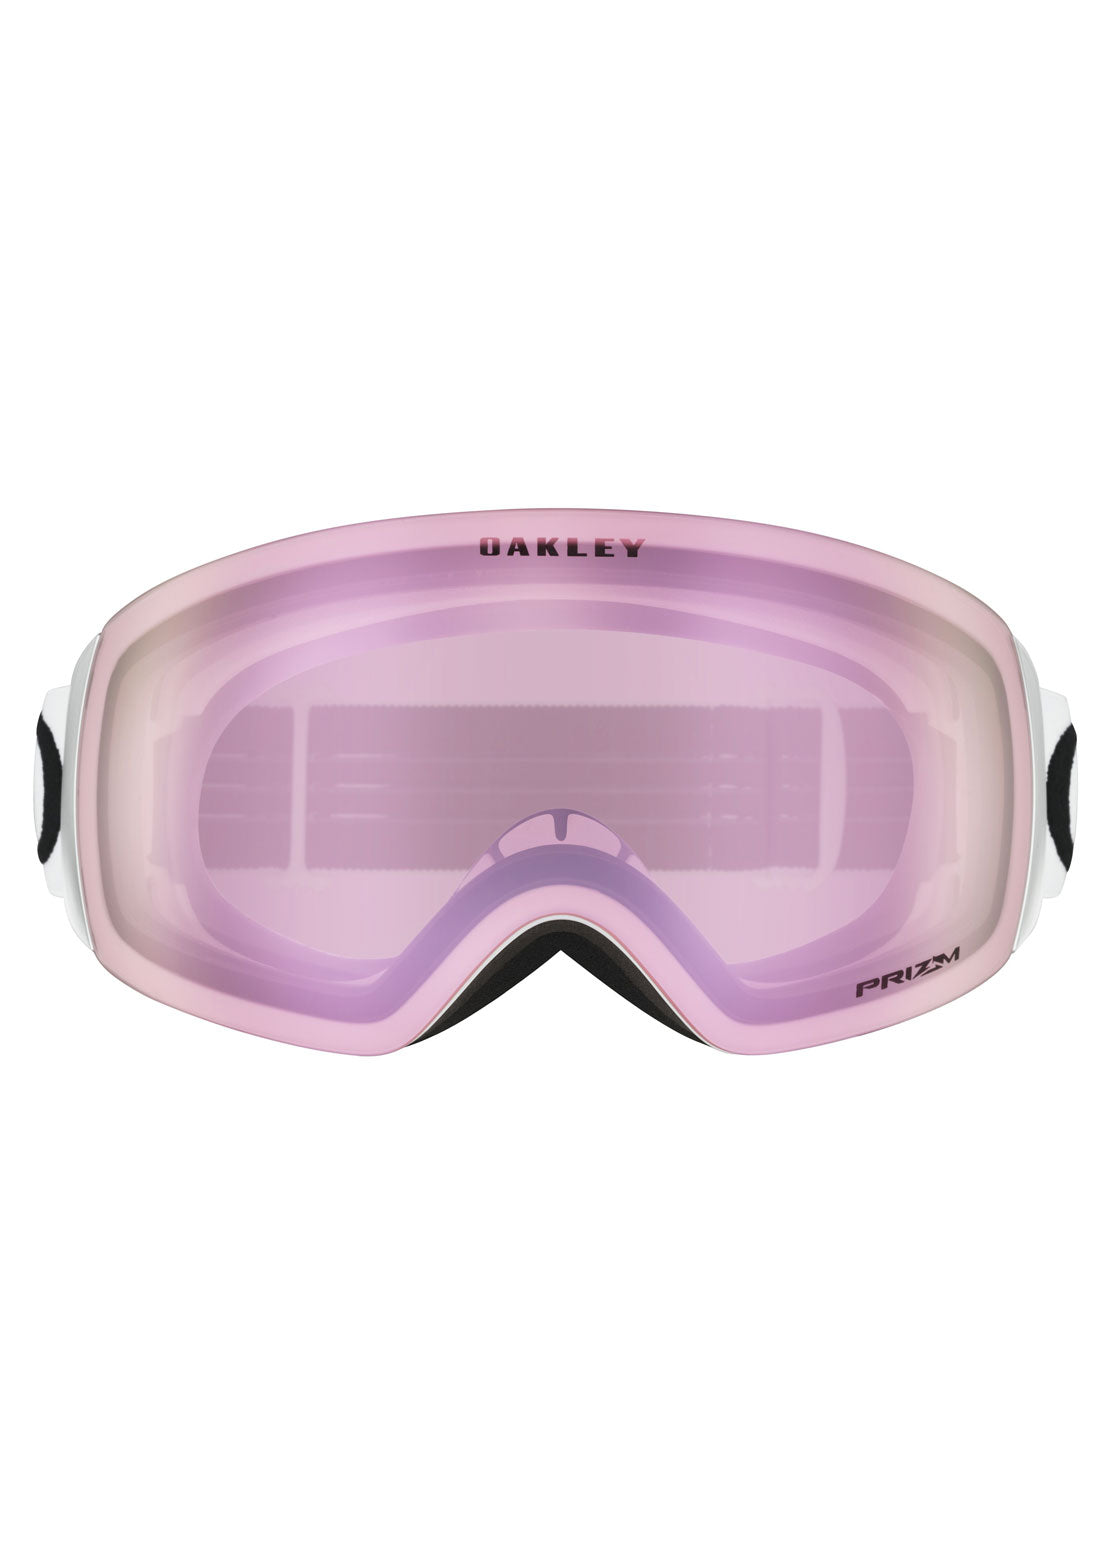 Oakley Flight Deck XM Snow Googles Matte White/Prizm HI Pink Iridium